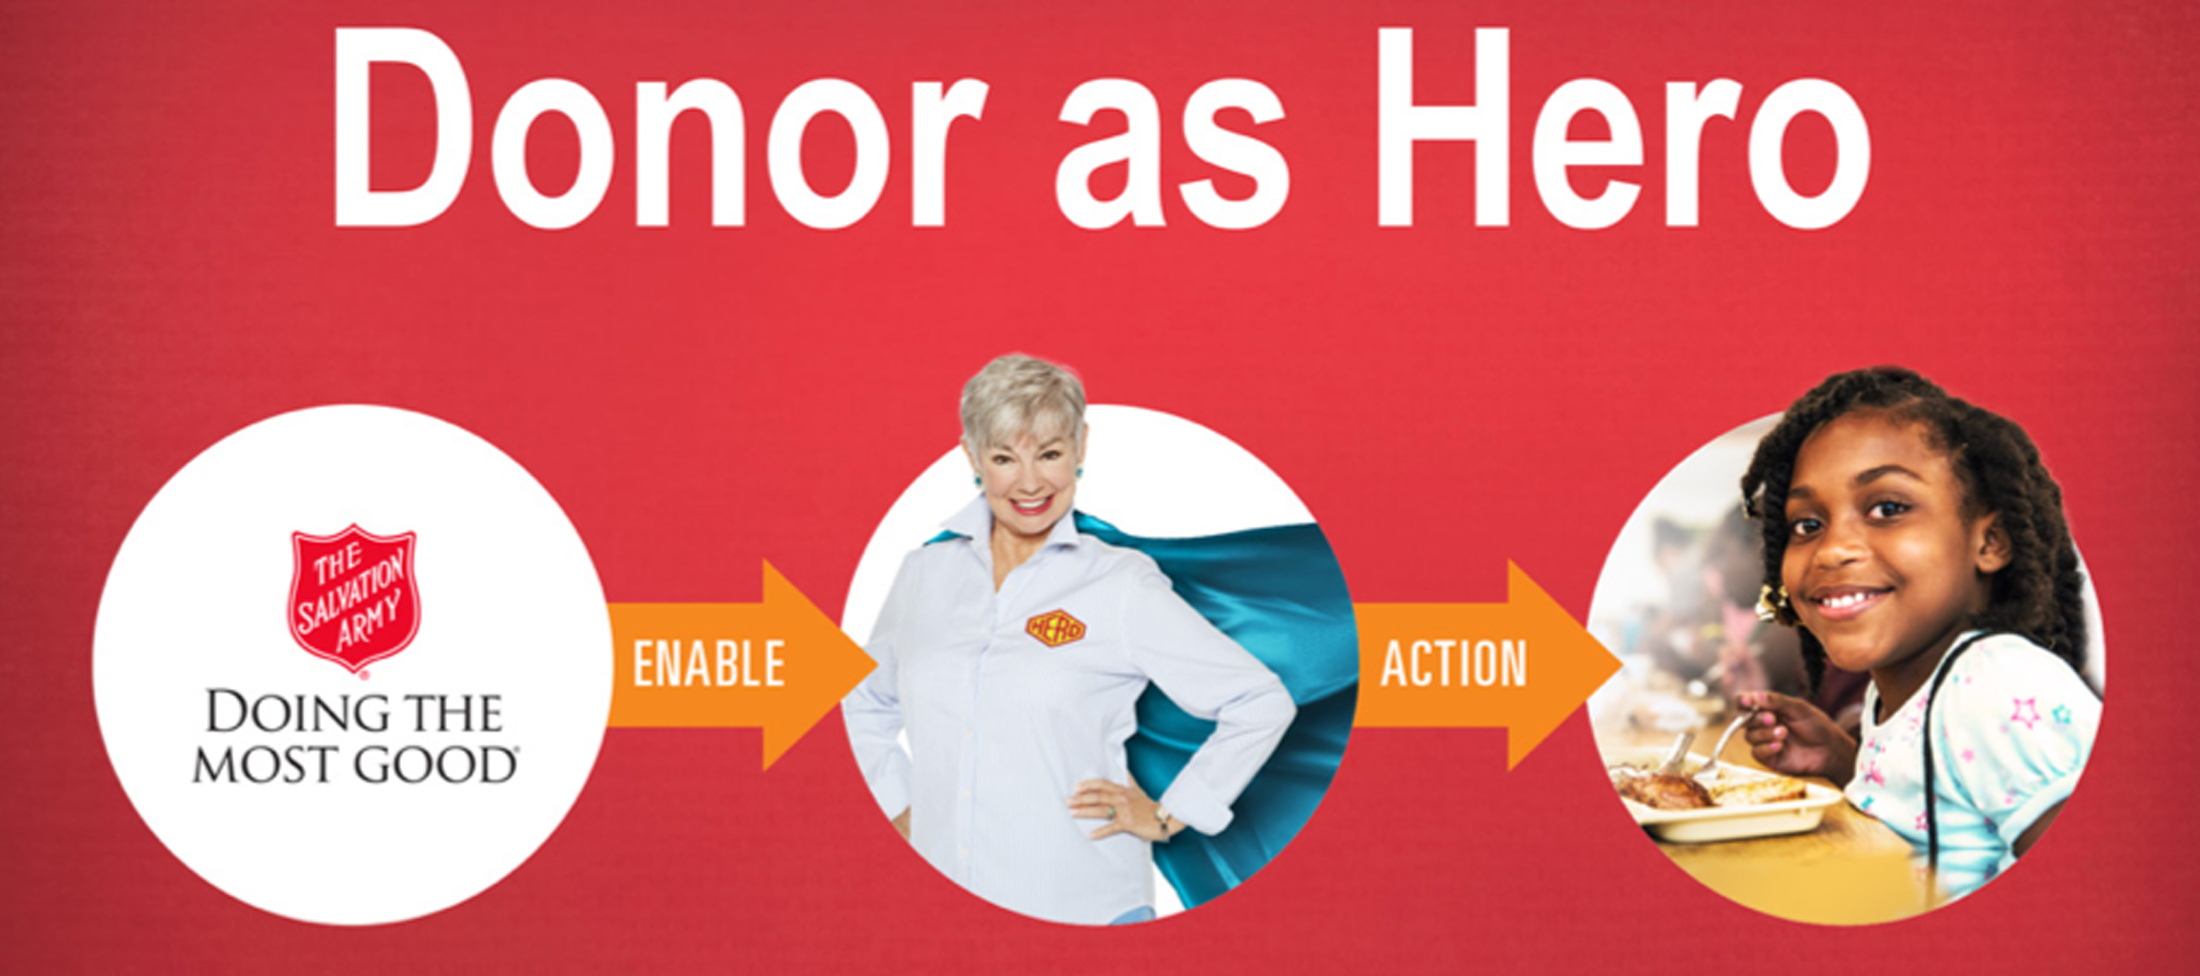 the-ringer-fundraising-blog-featured-image-donor-as-hero-creative